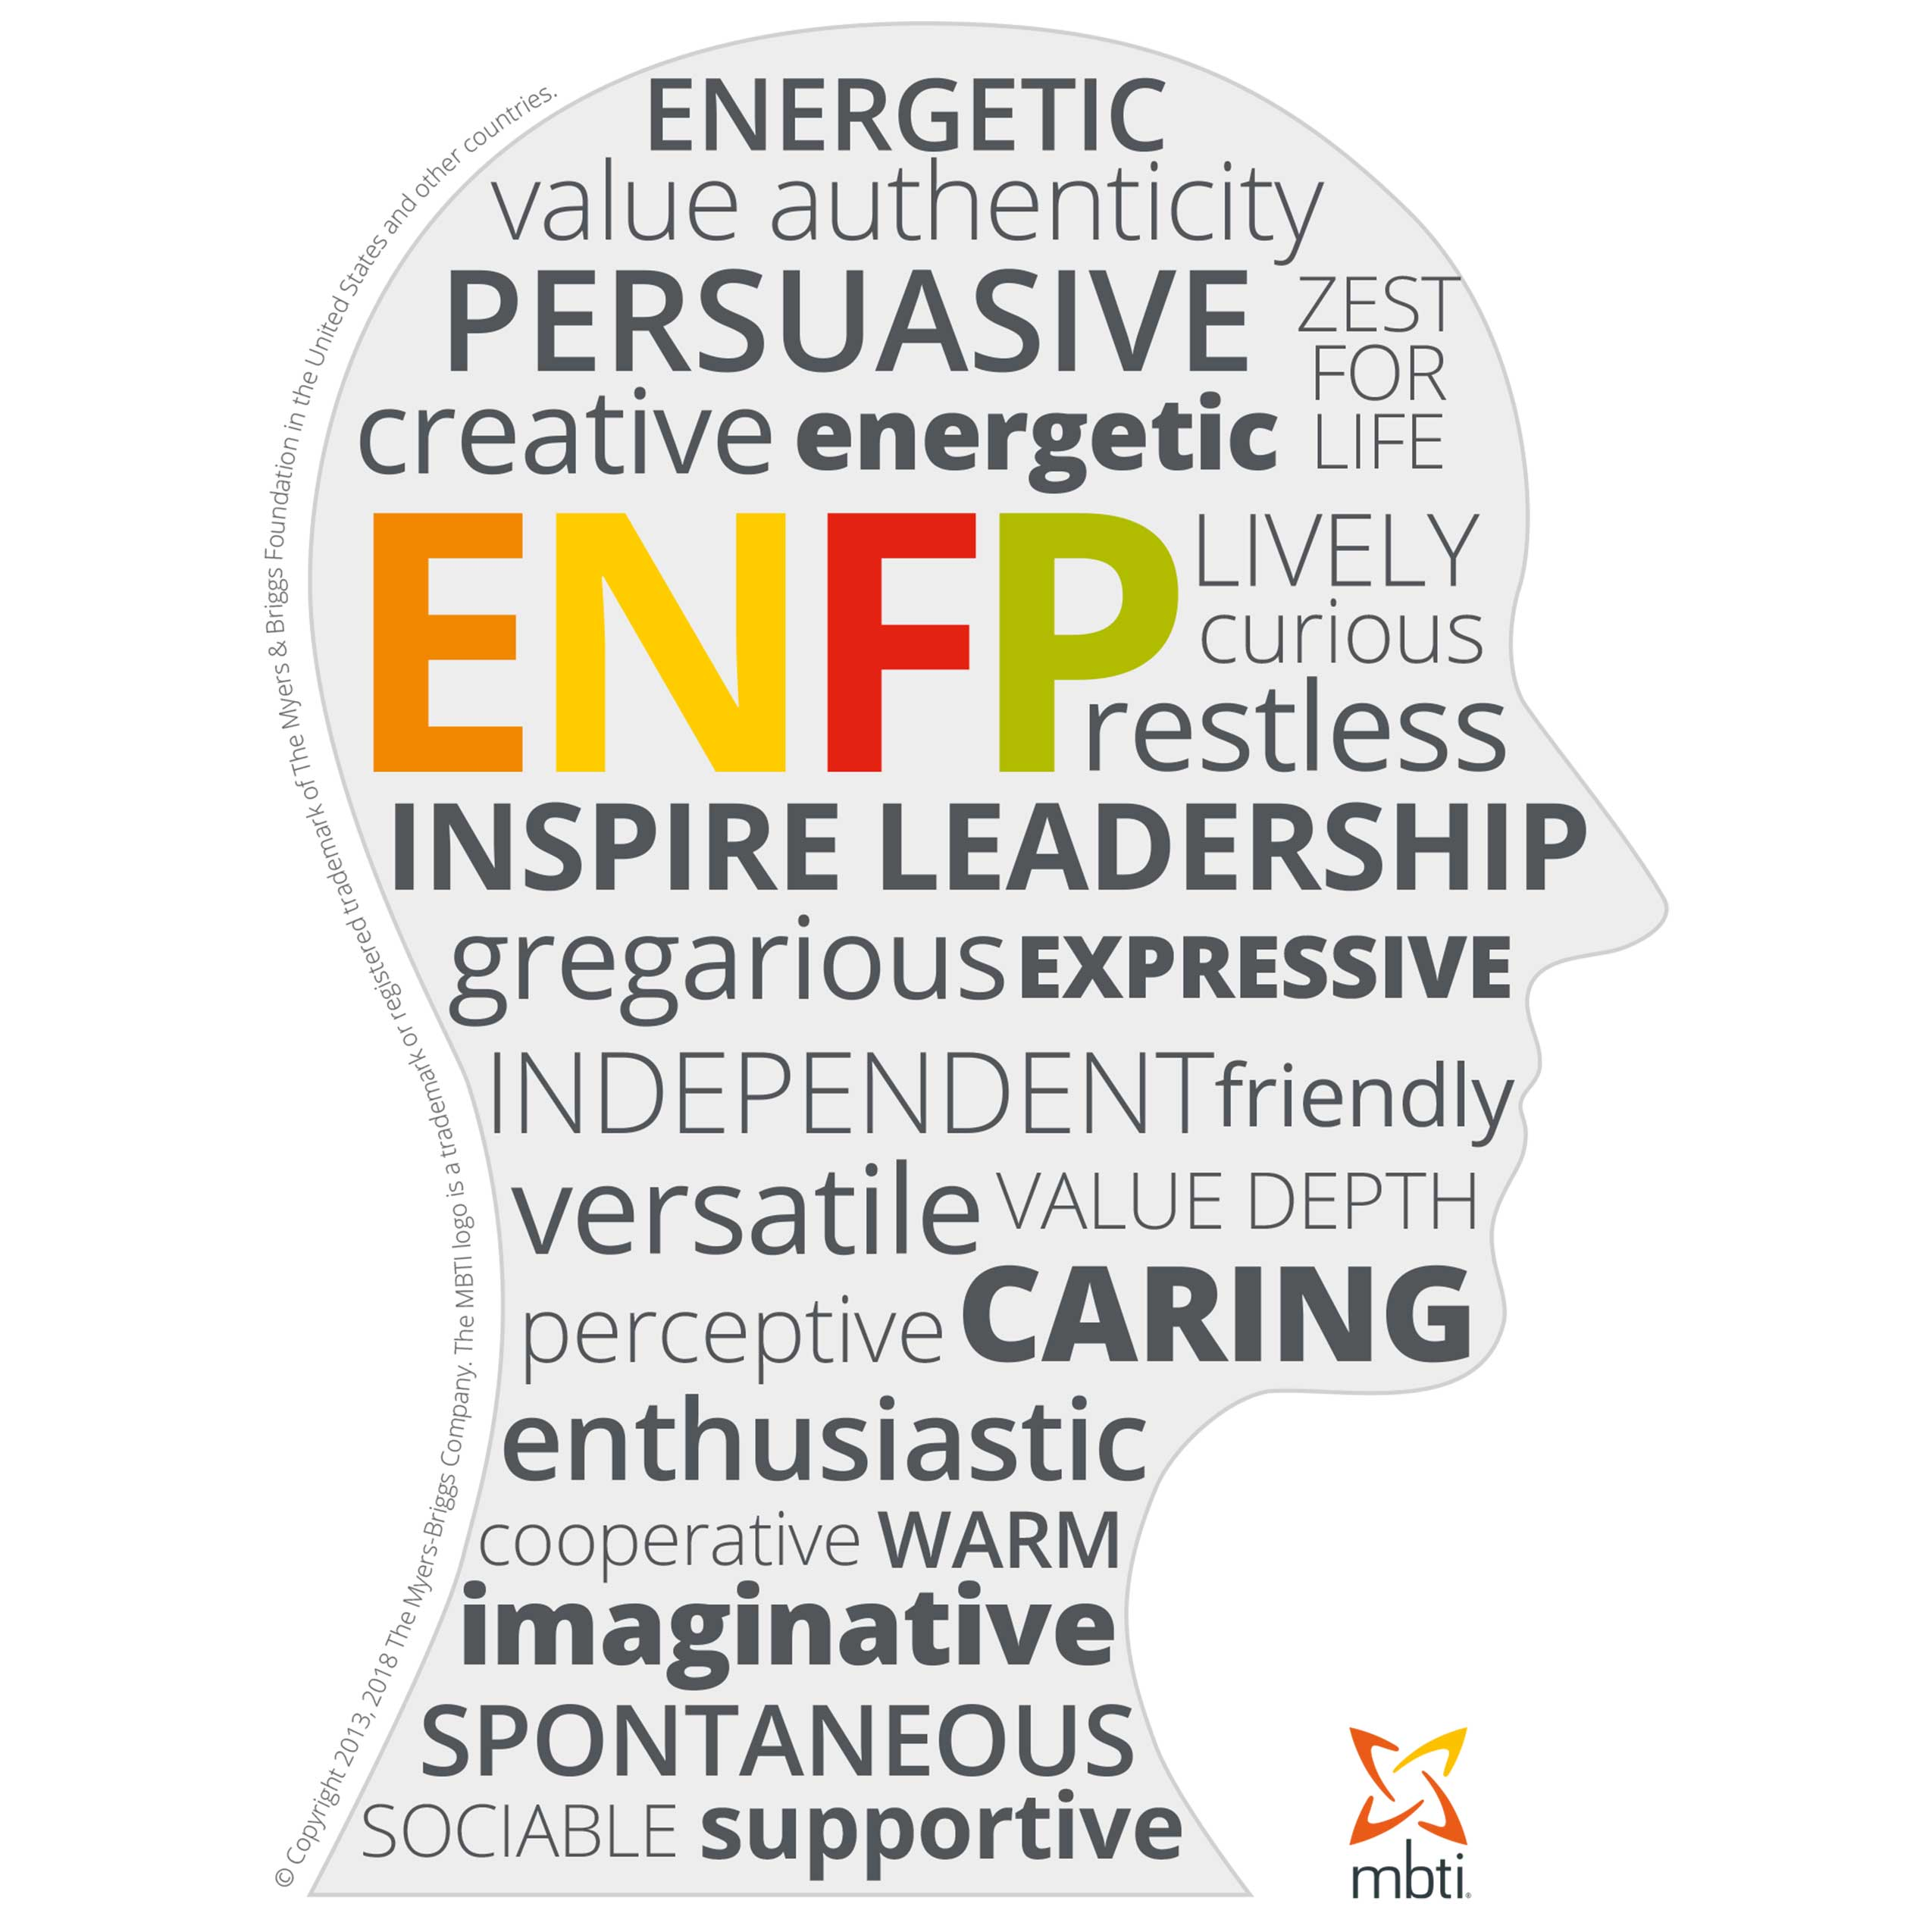 Typical characteristics of an ENFP